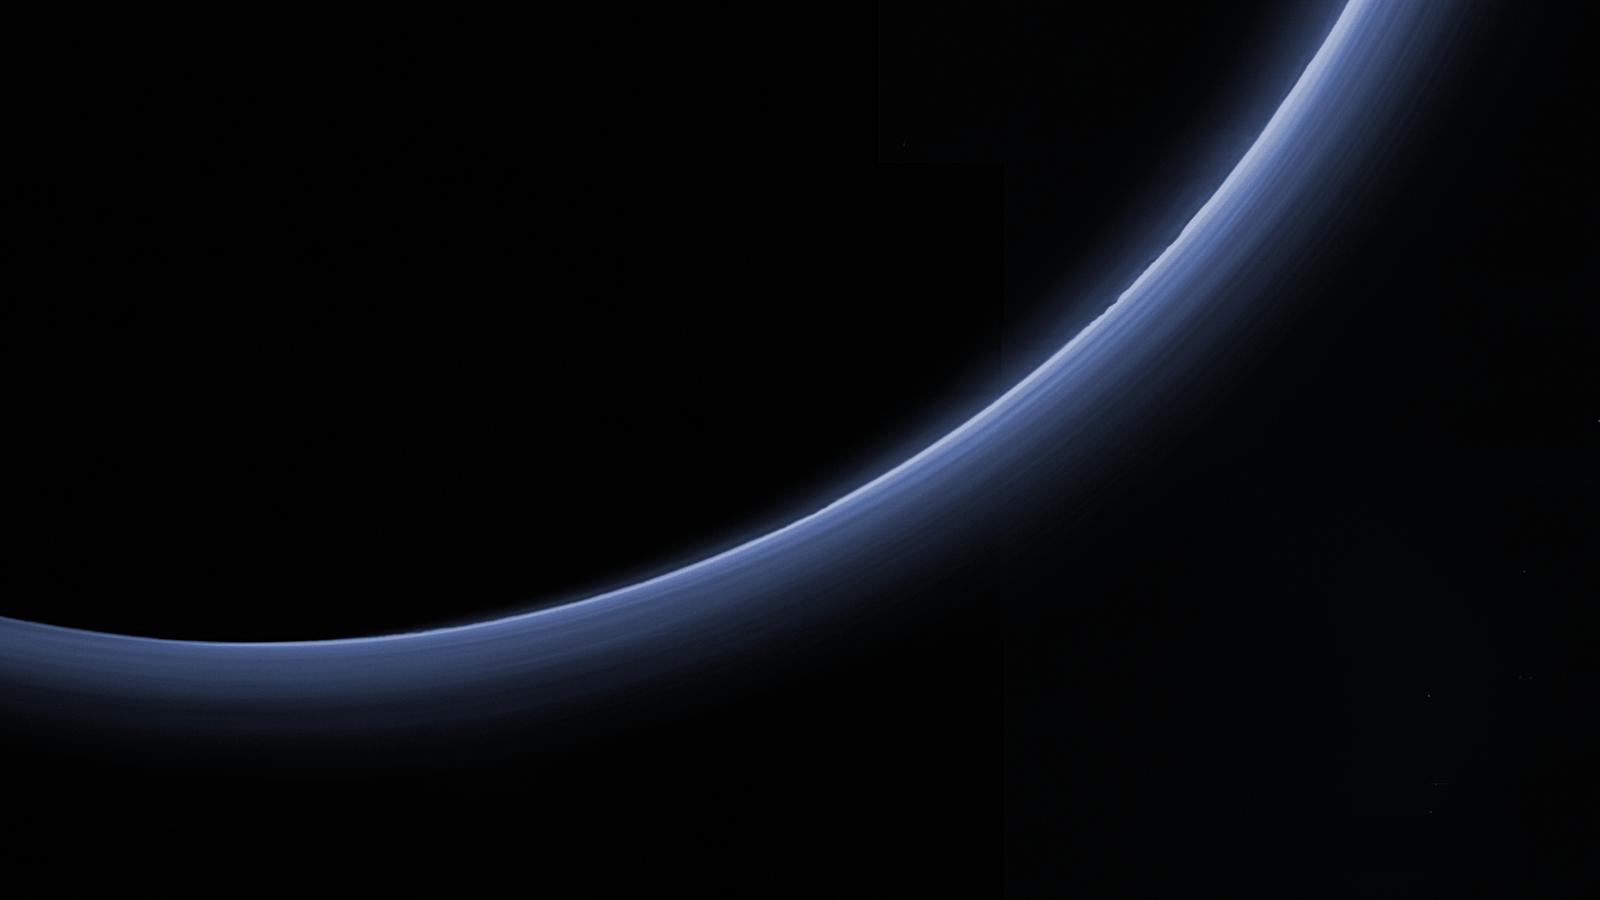 New Image From New Horizons Shows Layers In Pluto's Atmosphere